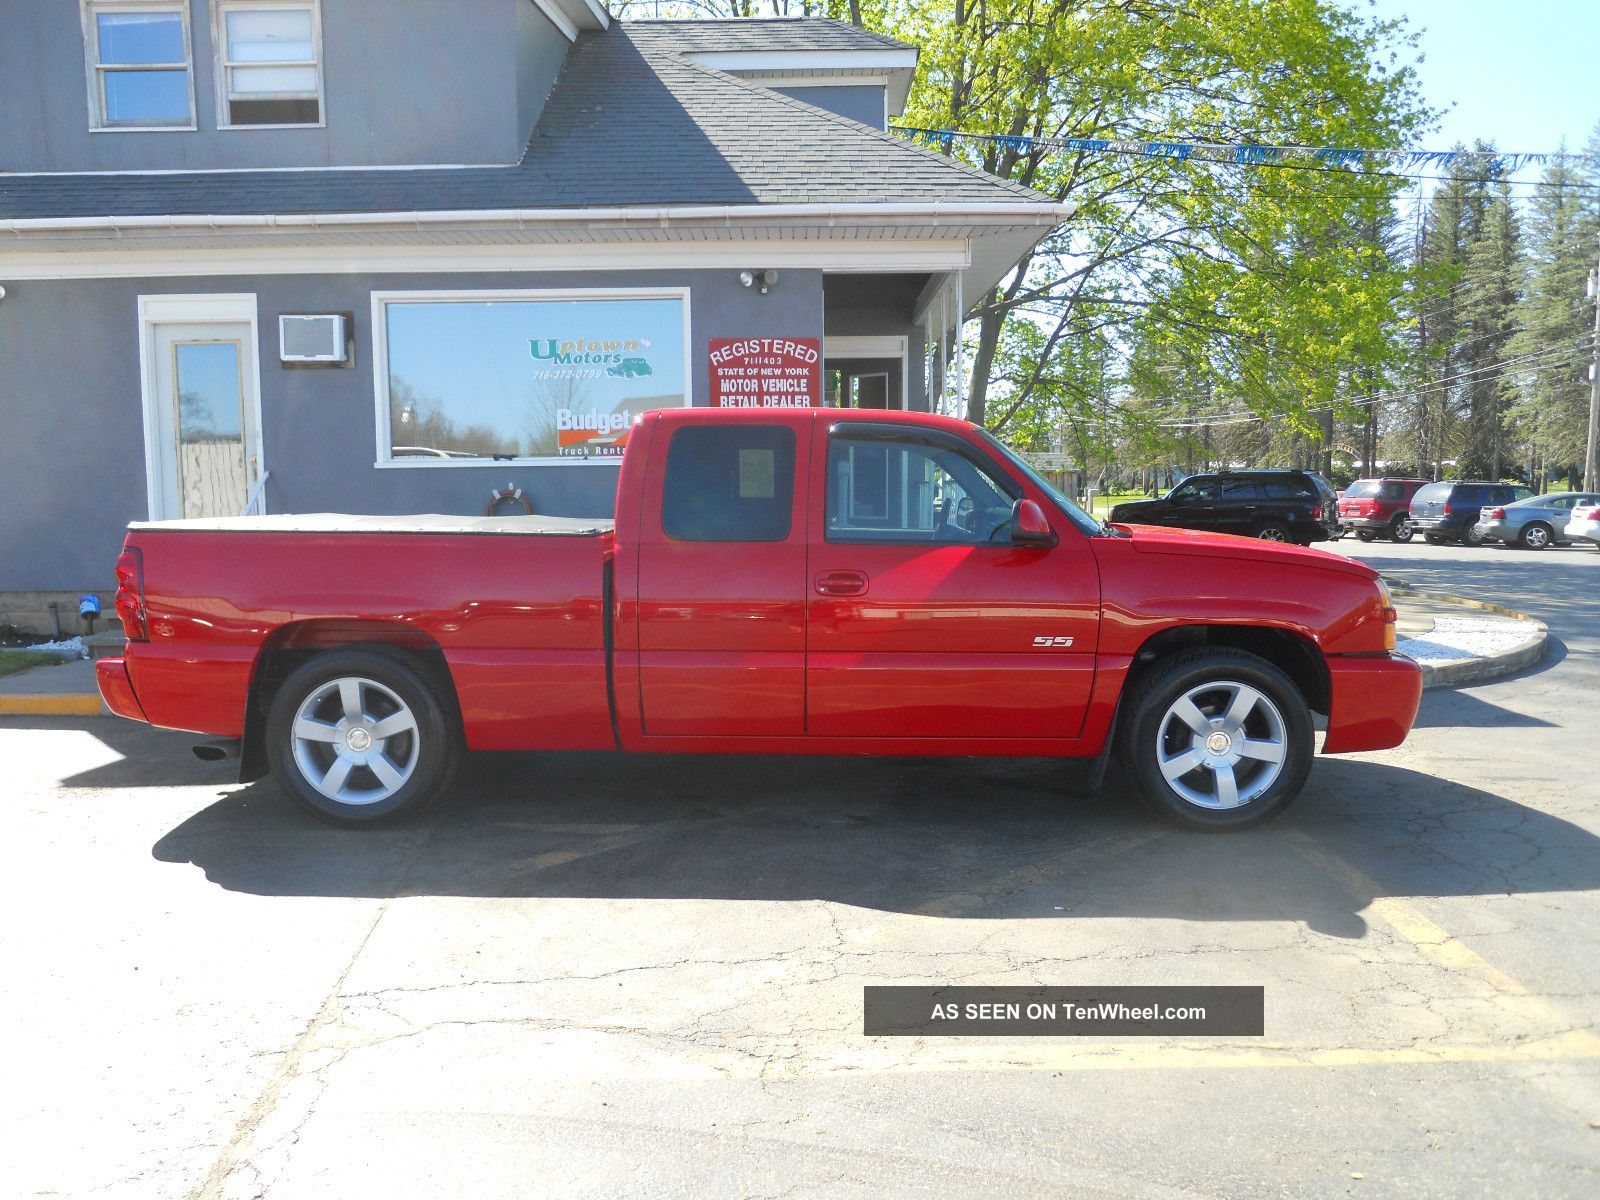 silverado std ss dr cab extended cargurus cars overview pic awd sb chevrolet